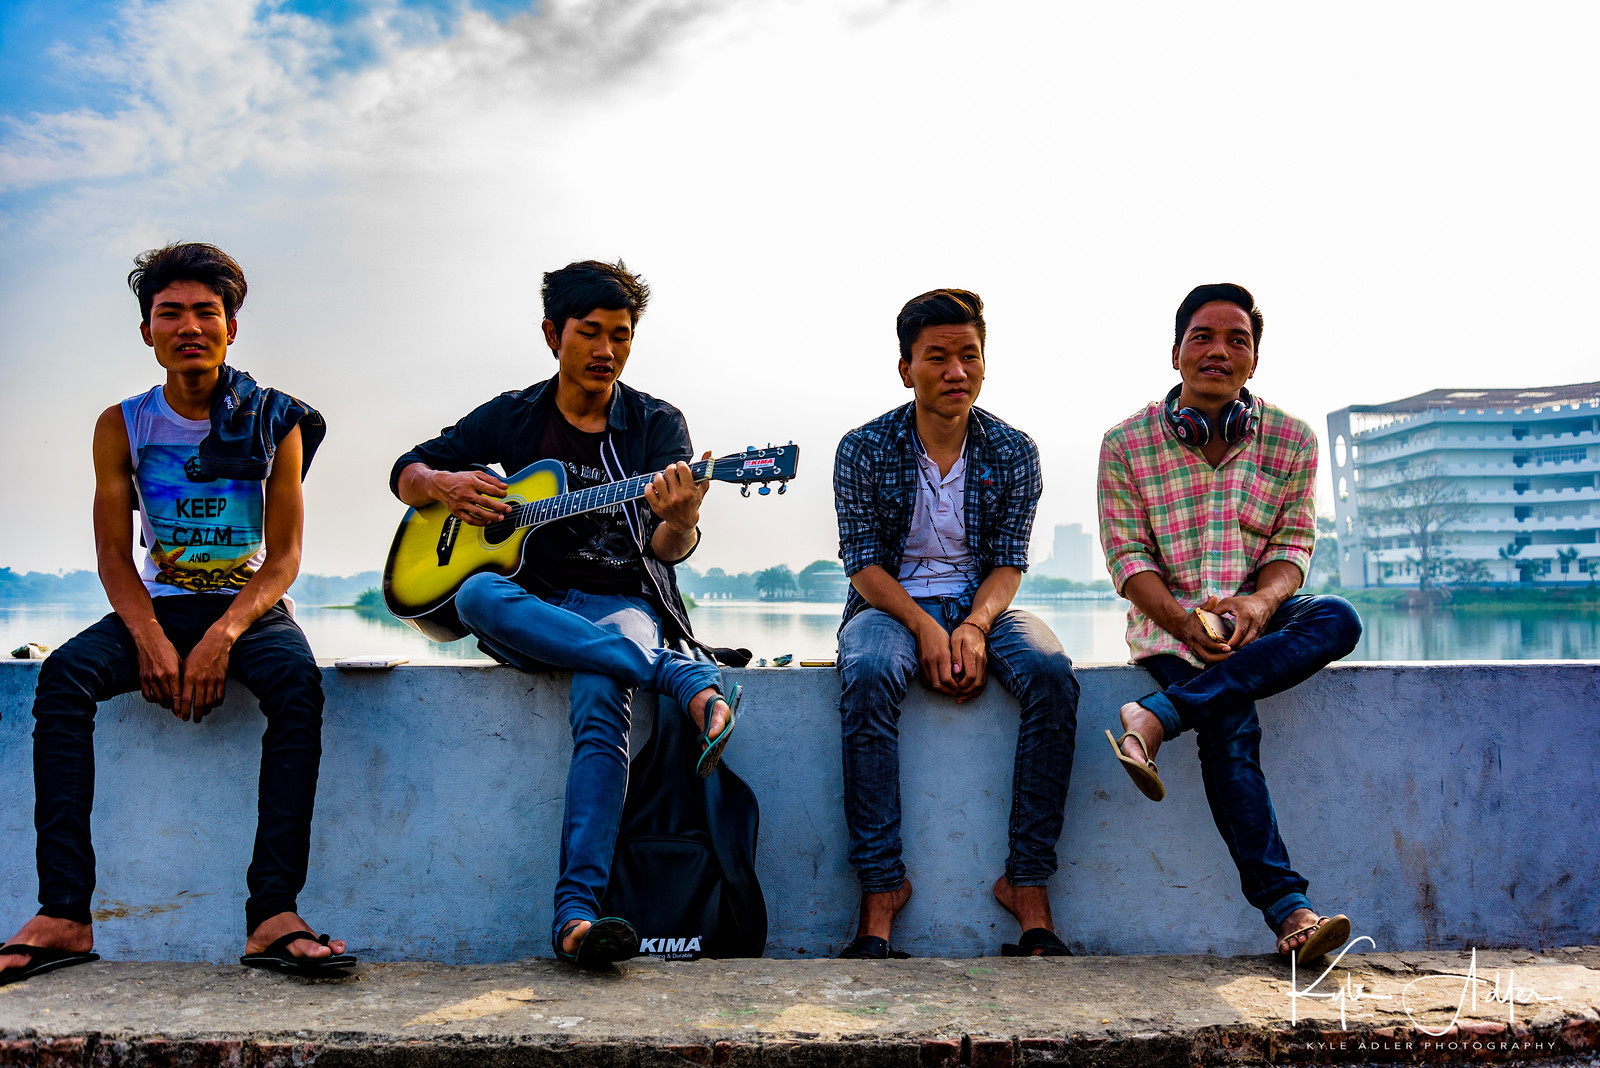 Rangoon's Inya Lake, site of the former military junta's brutal response to the 8888 uprisings and the Saffron Revolution, is now a peaceful place where young people picnic, make music, and go on dates.